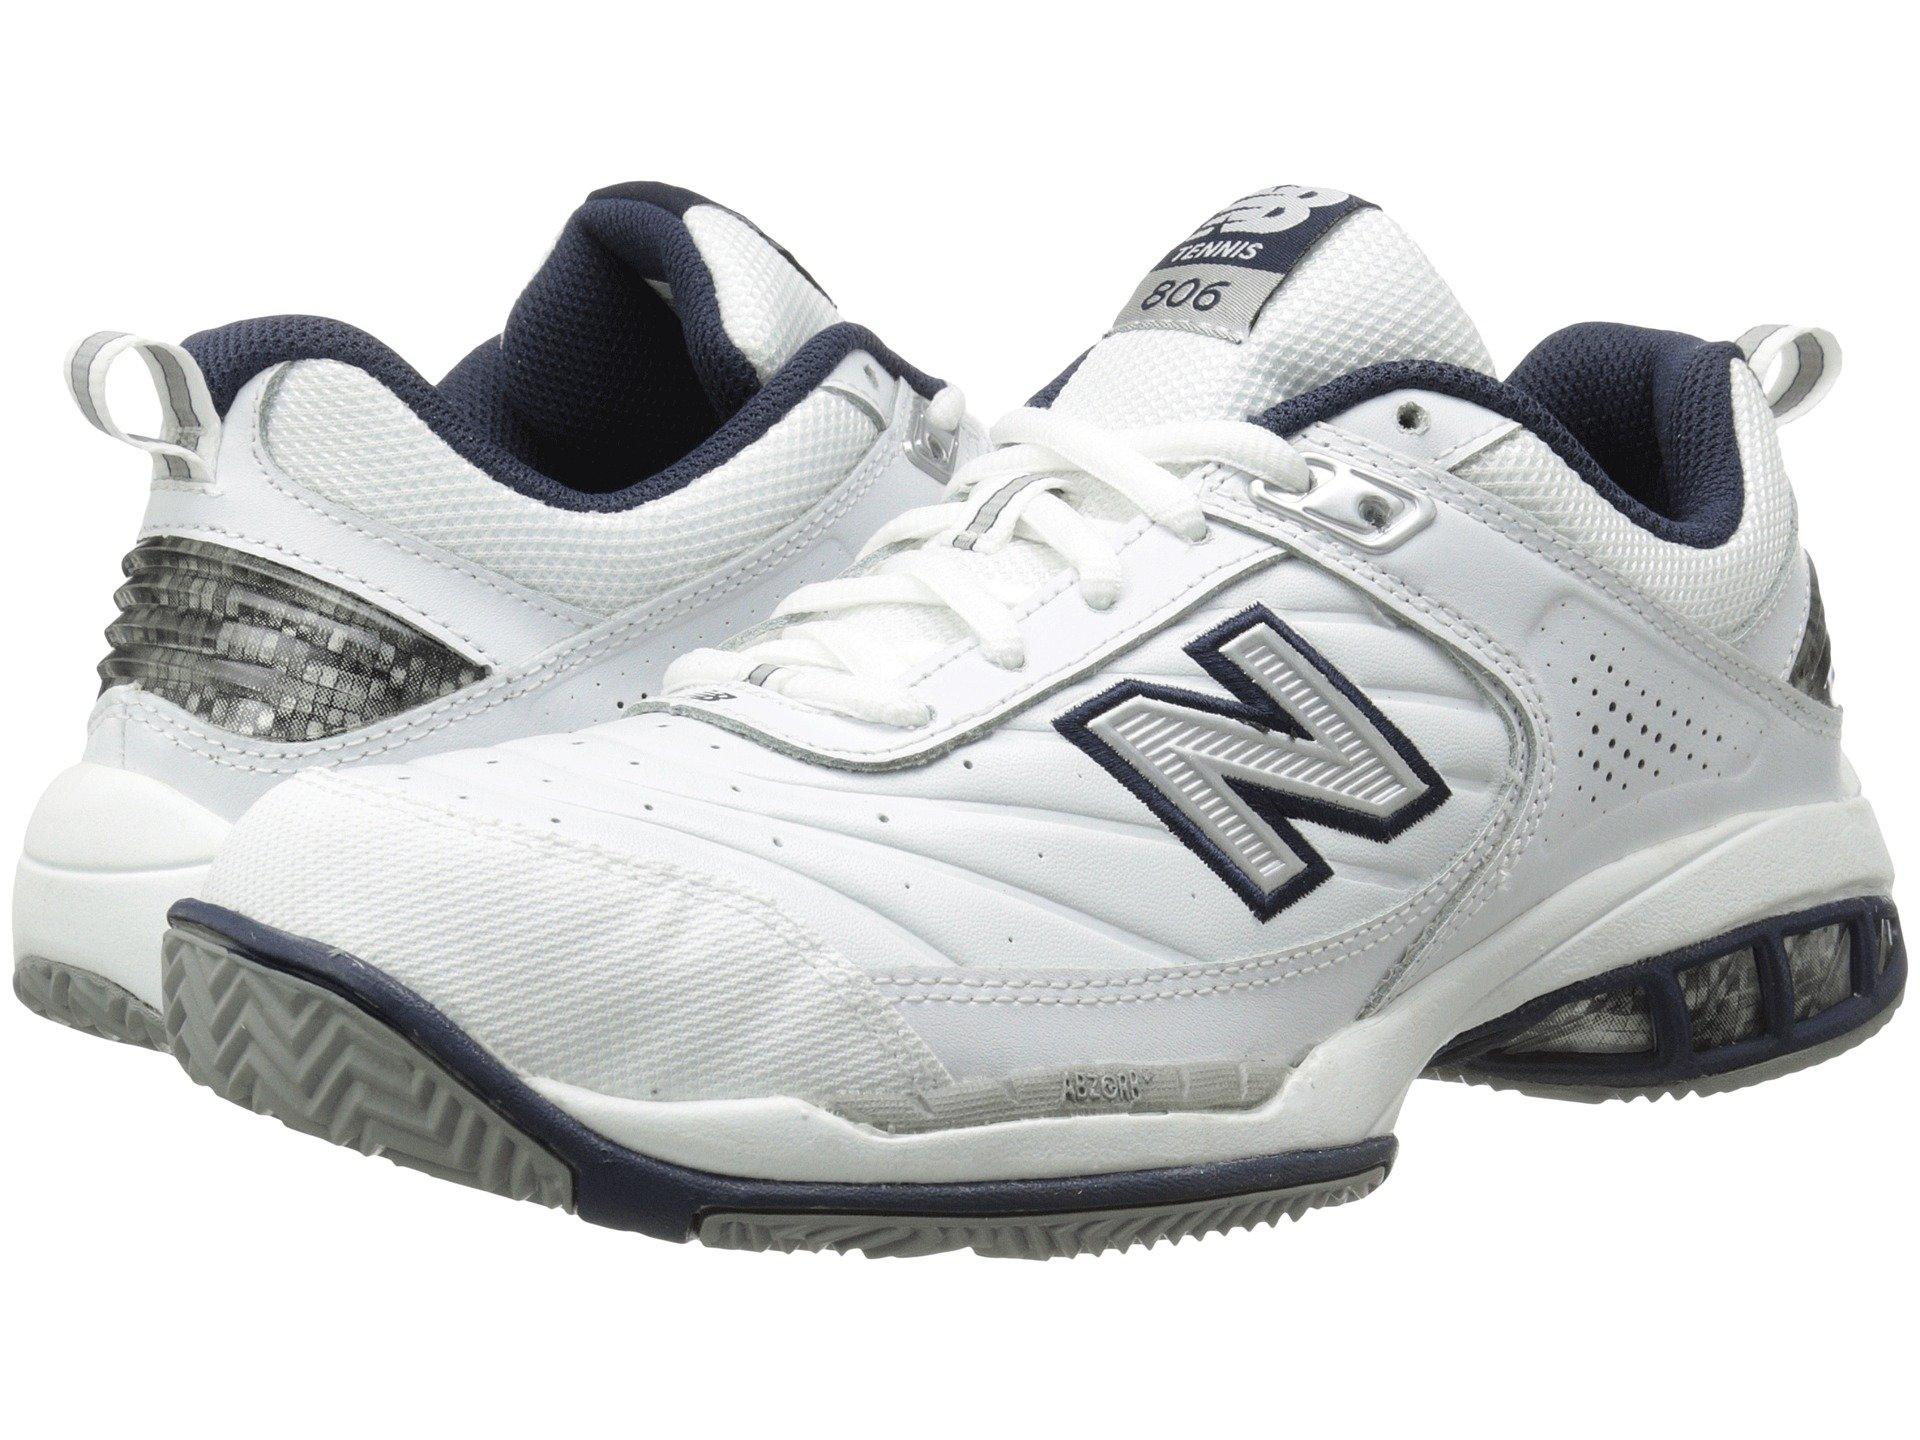 b9698990ee0a Men s New Balance Sneakers   Athletic Shoes + FREE SHIPPING